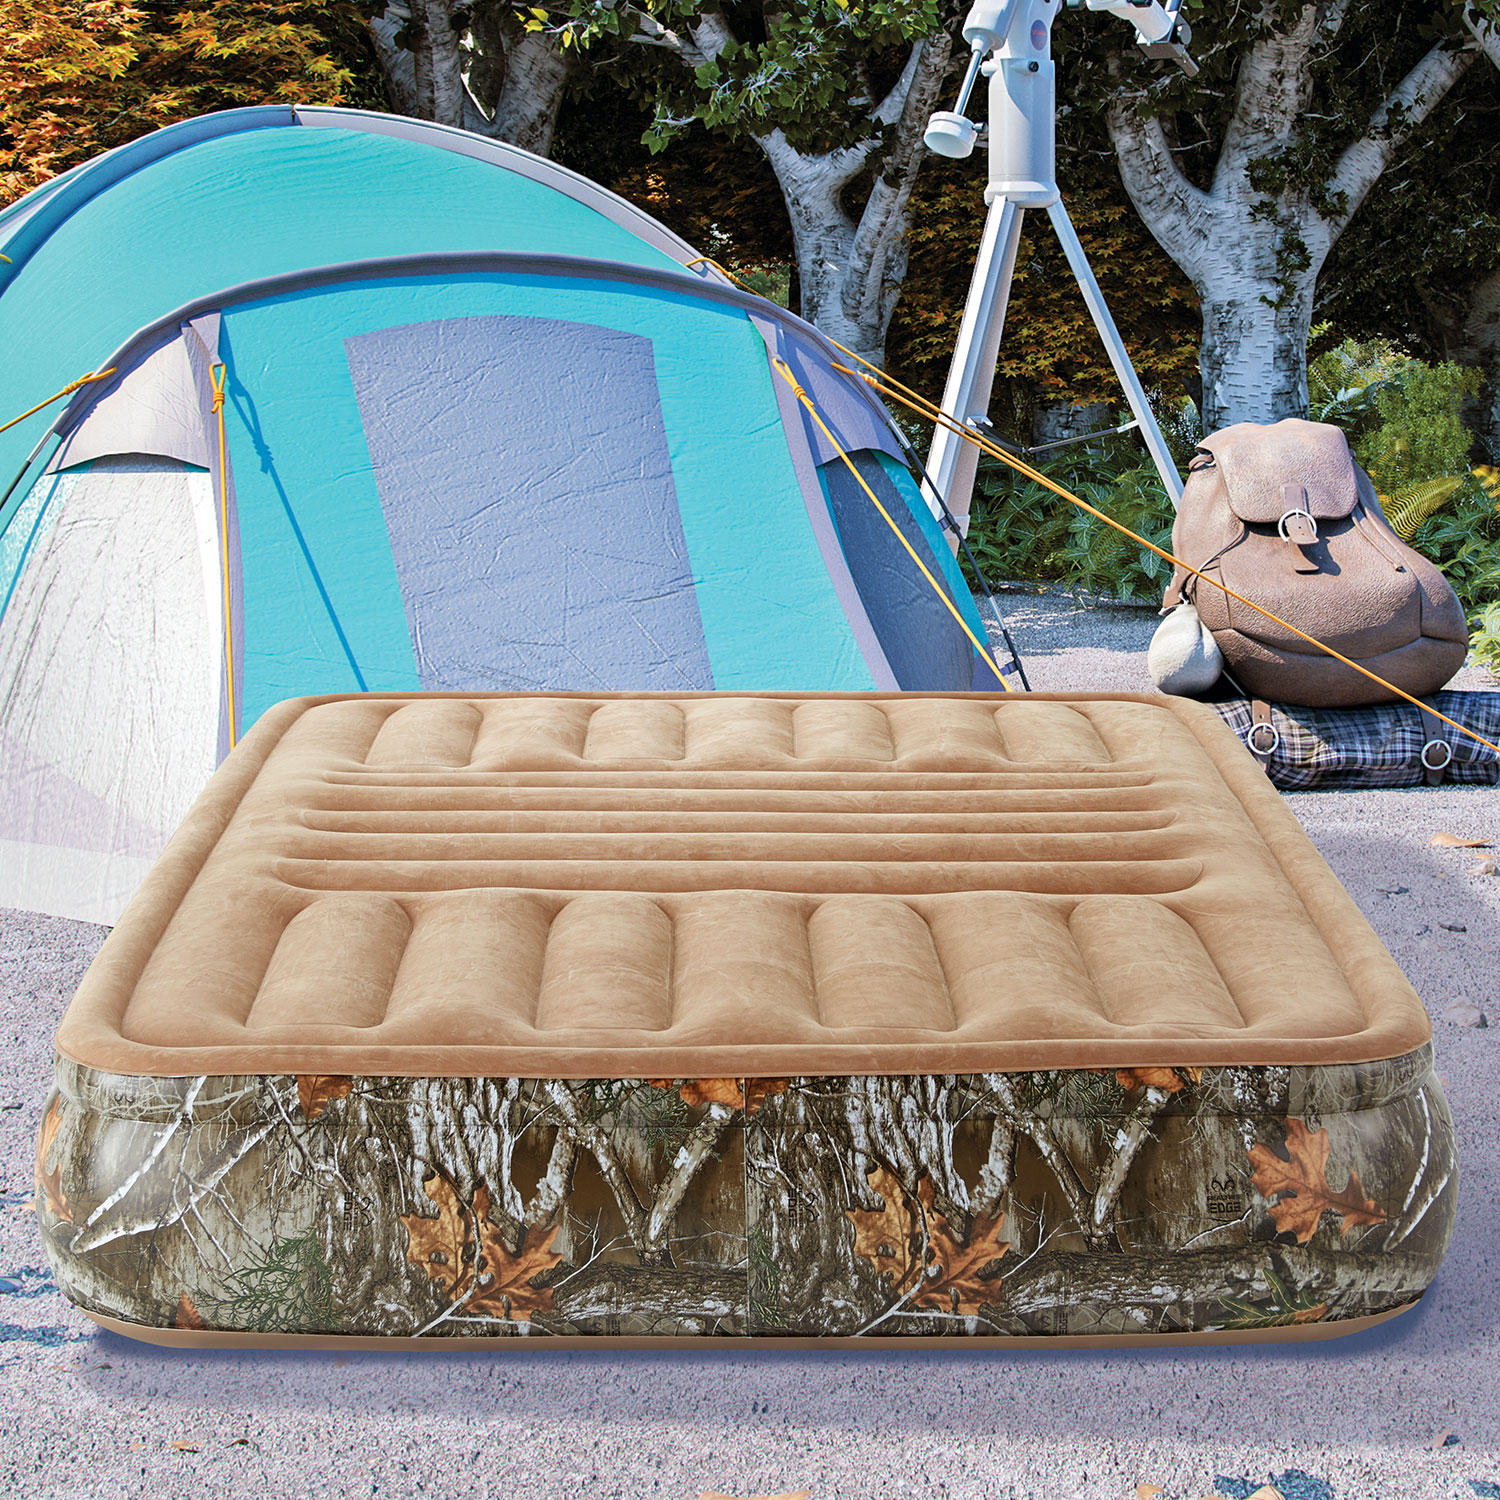 Realtree EDGE 14″ Sport Air Bed Inflatable Mattress